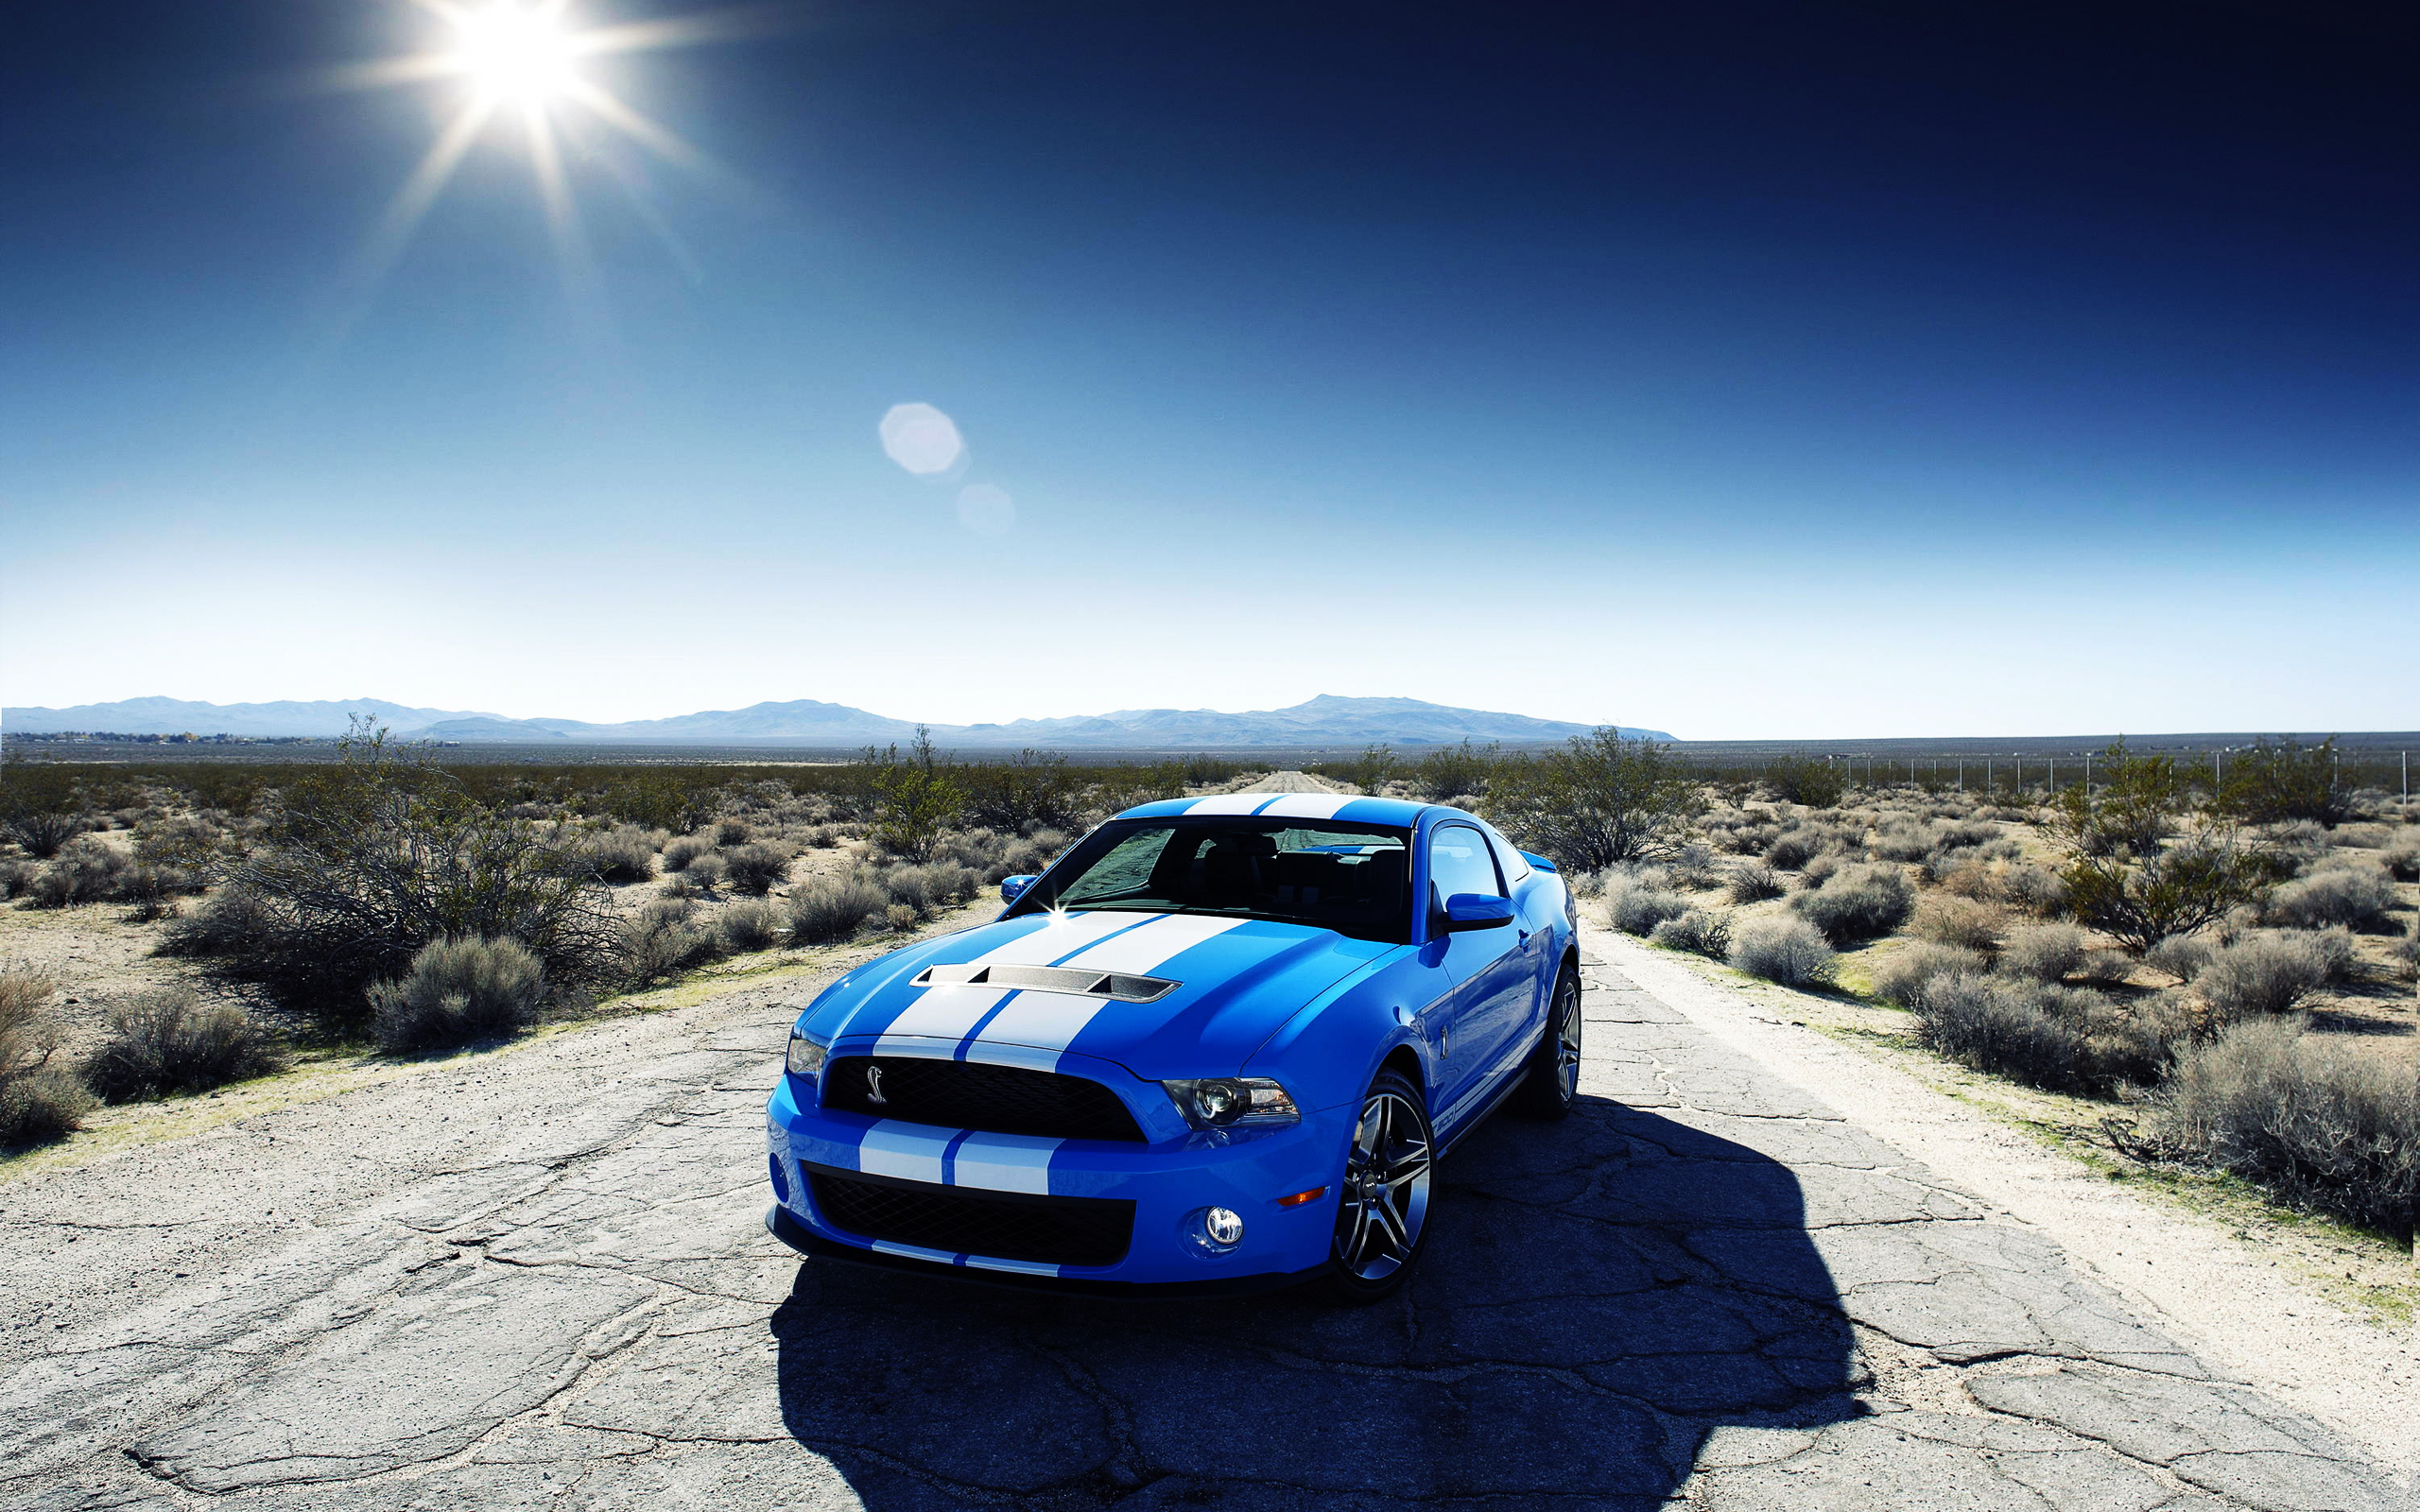 HD Car Wallpaper  WallpaperSafari